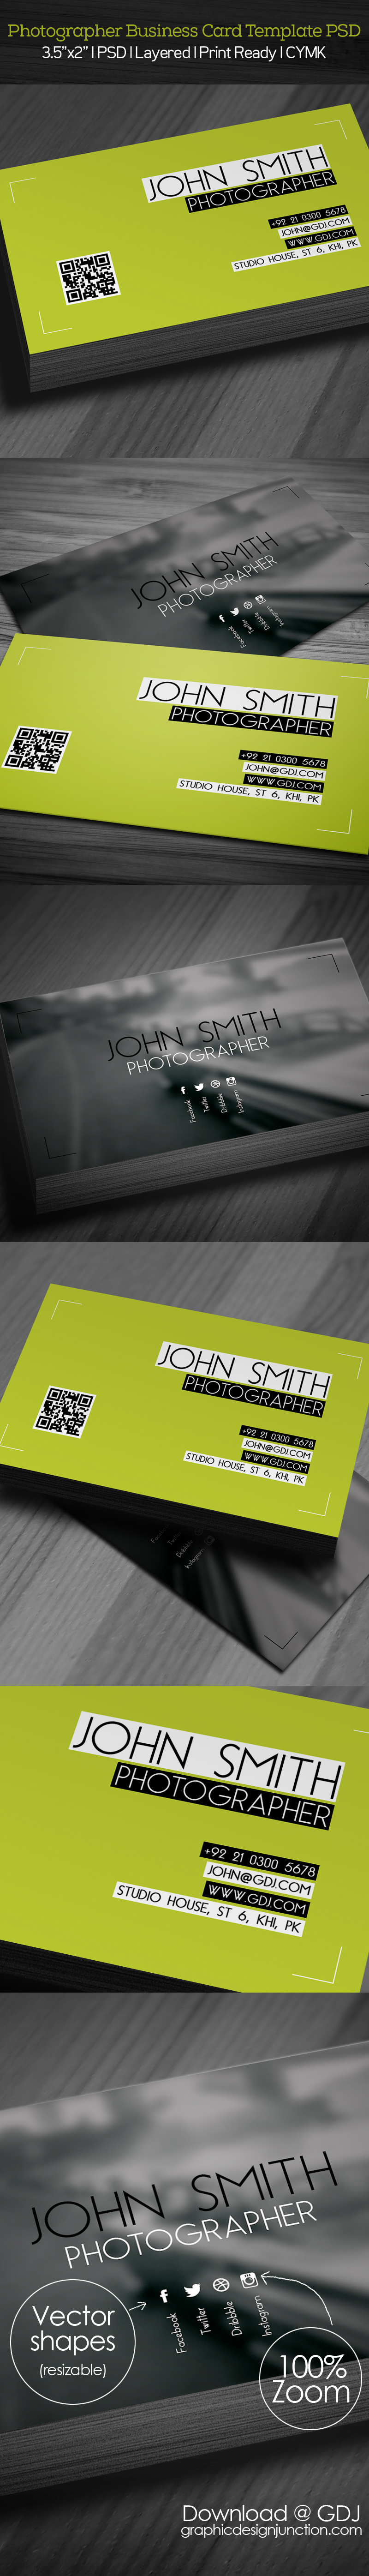 Free photographer business card psd template freebies graphic free photographer business card psd template large preview free photographer business card reheart Gallery